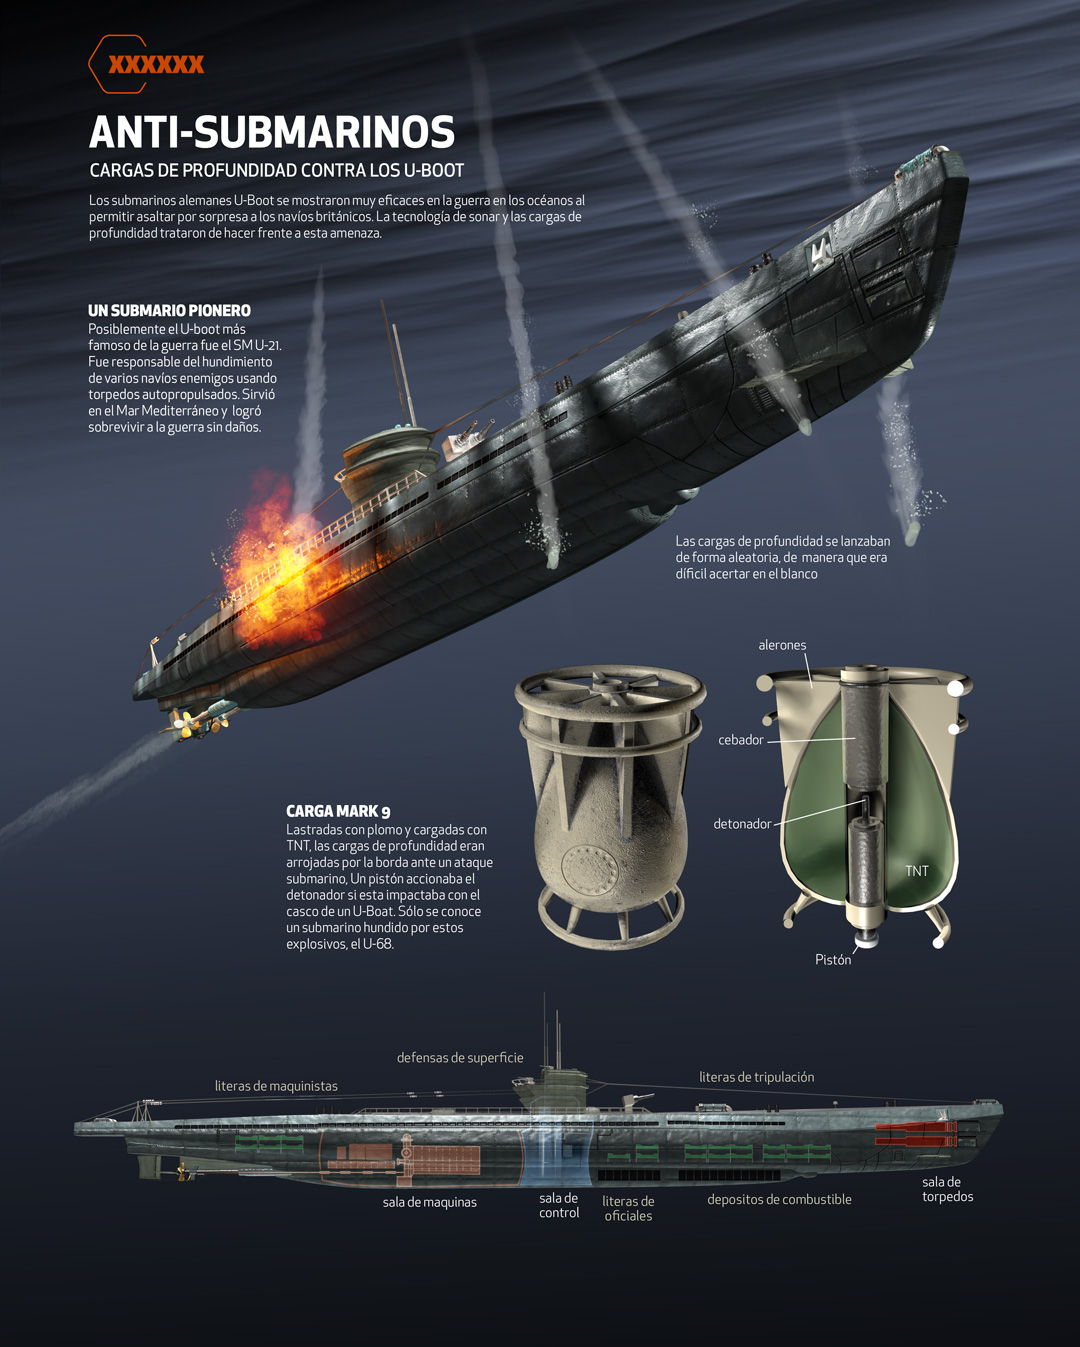 World War One Technology, Quo Magazine July 2014. U-boat SM U-21 attacked by deep charges. Art by Román García Mora.